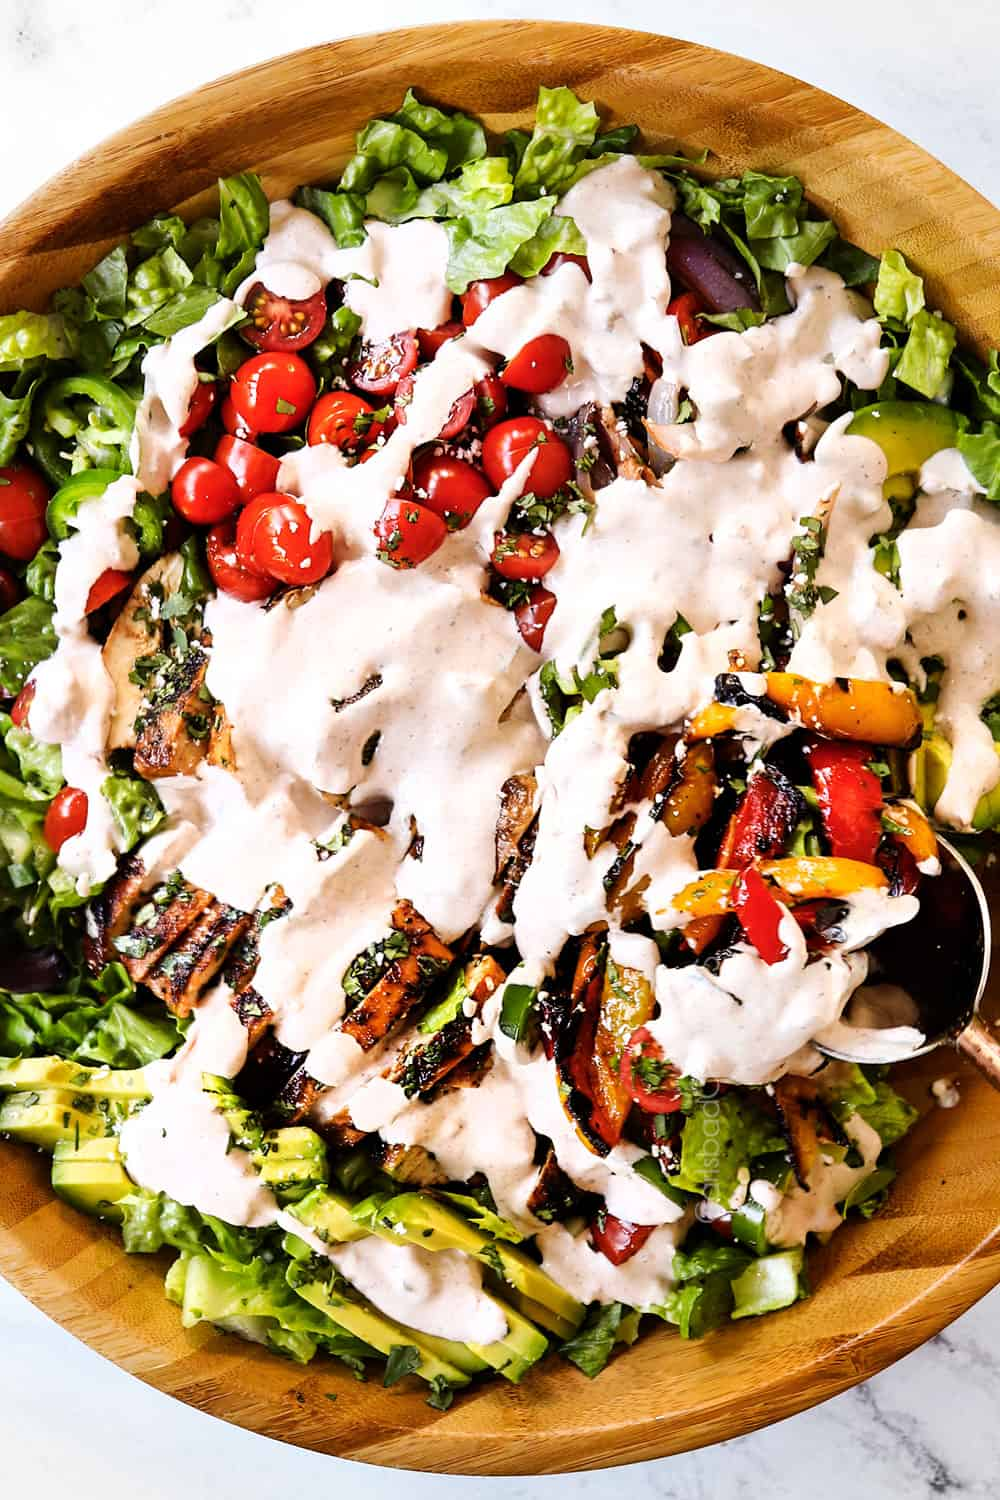 showing how to make chicken fajita salad by drizzling with creamy dressing